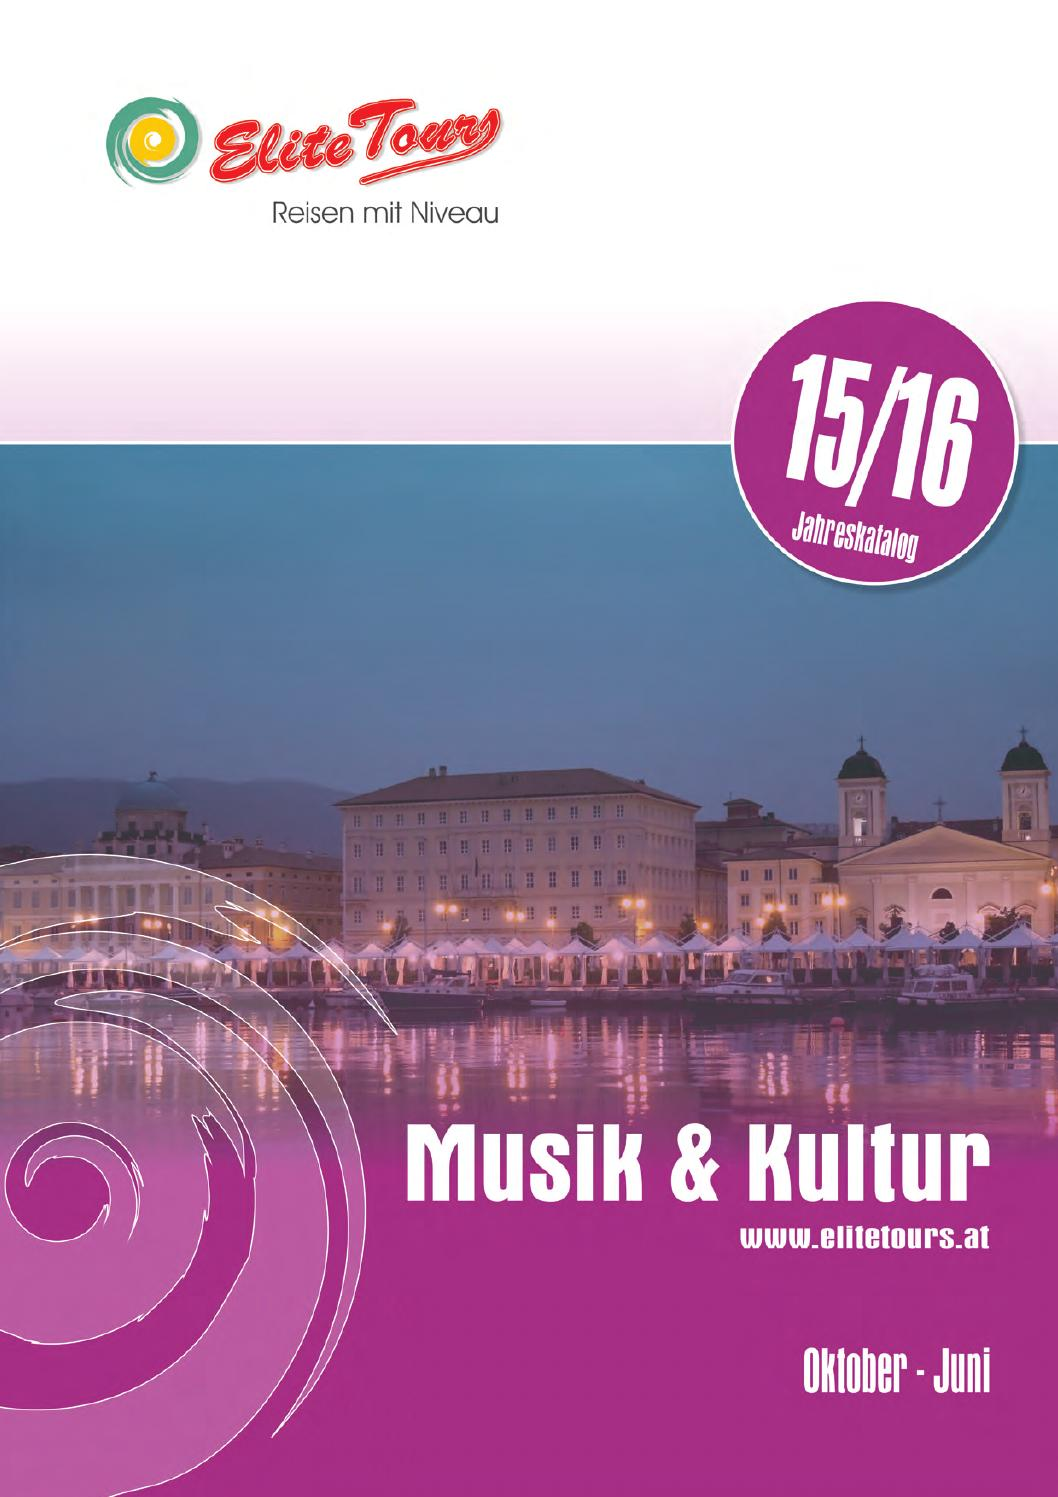 Elite Tours Musik und Kultur 15/16 by Elite Tours Reisebüro - issuu